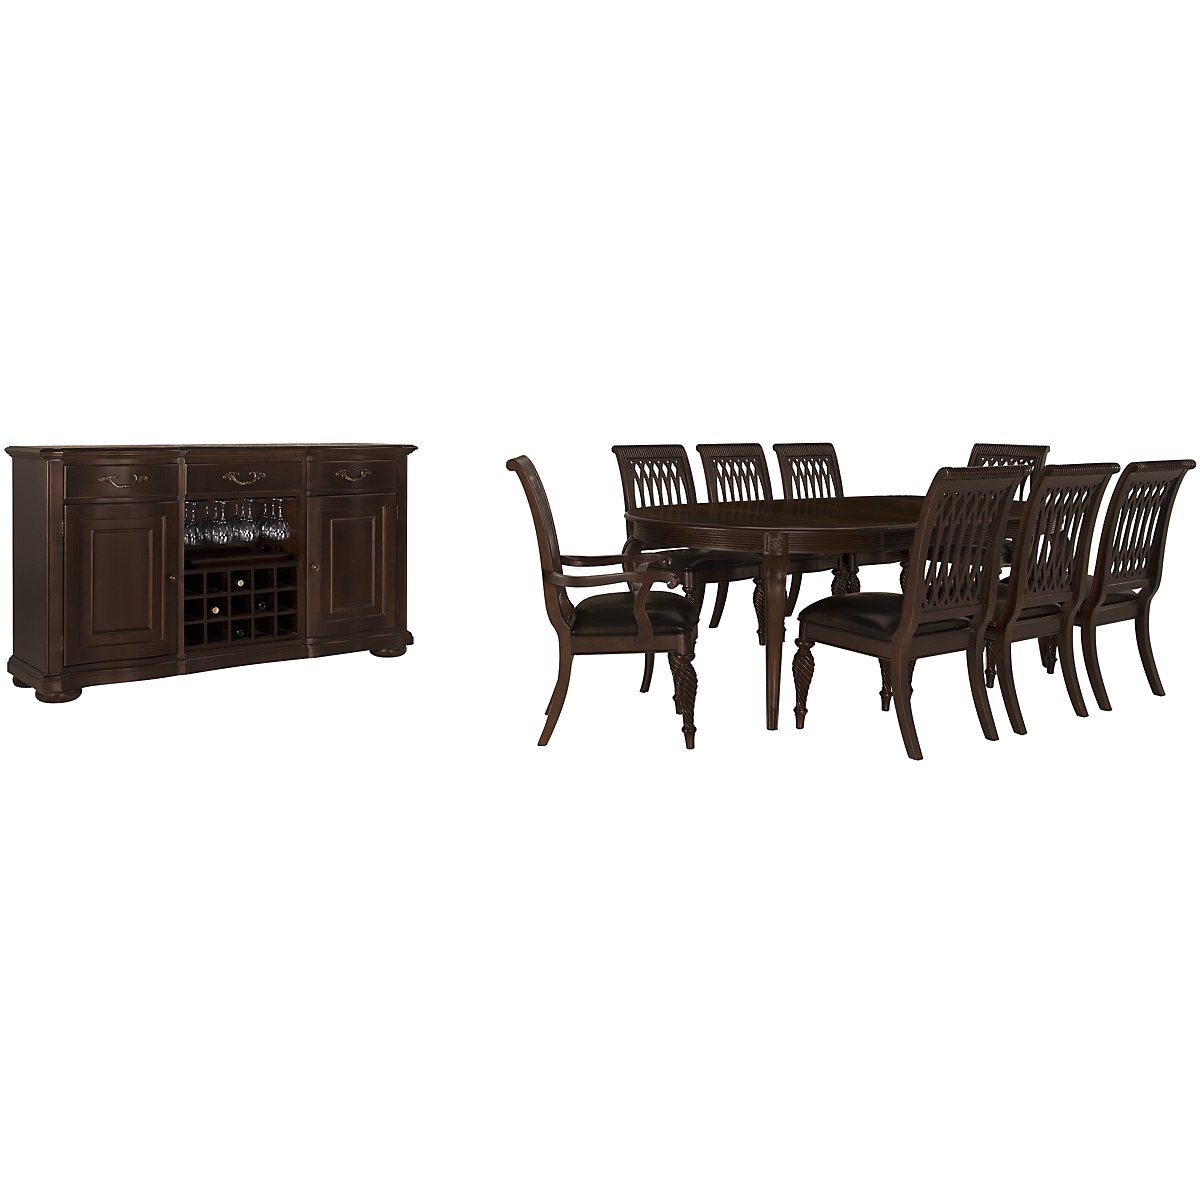 Belmont Dark Tone Oval Dining Room